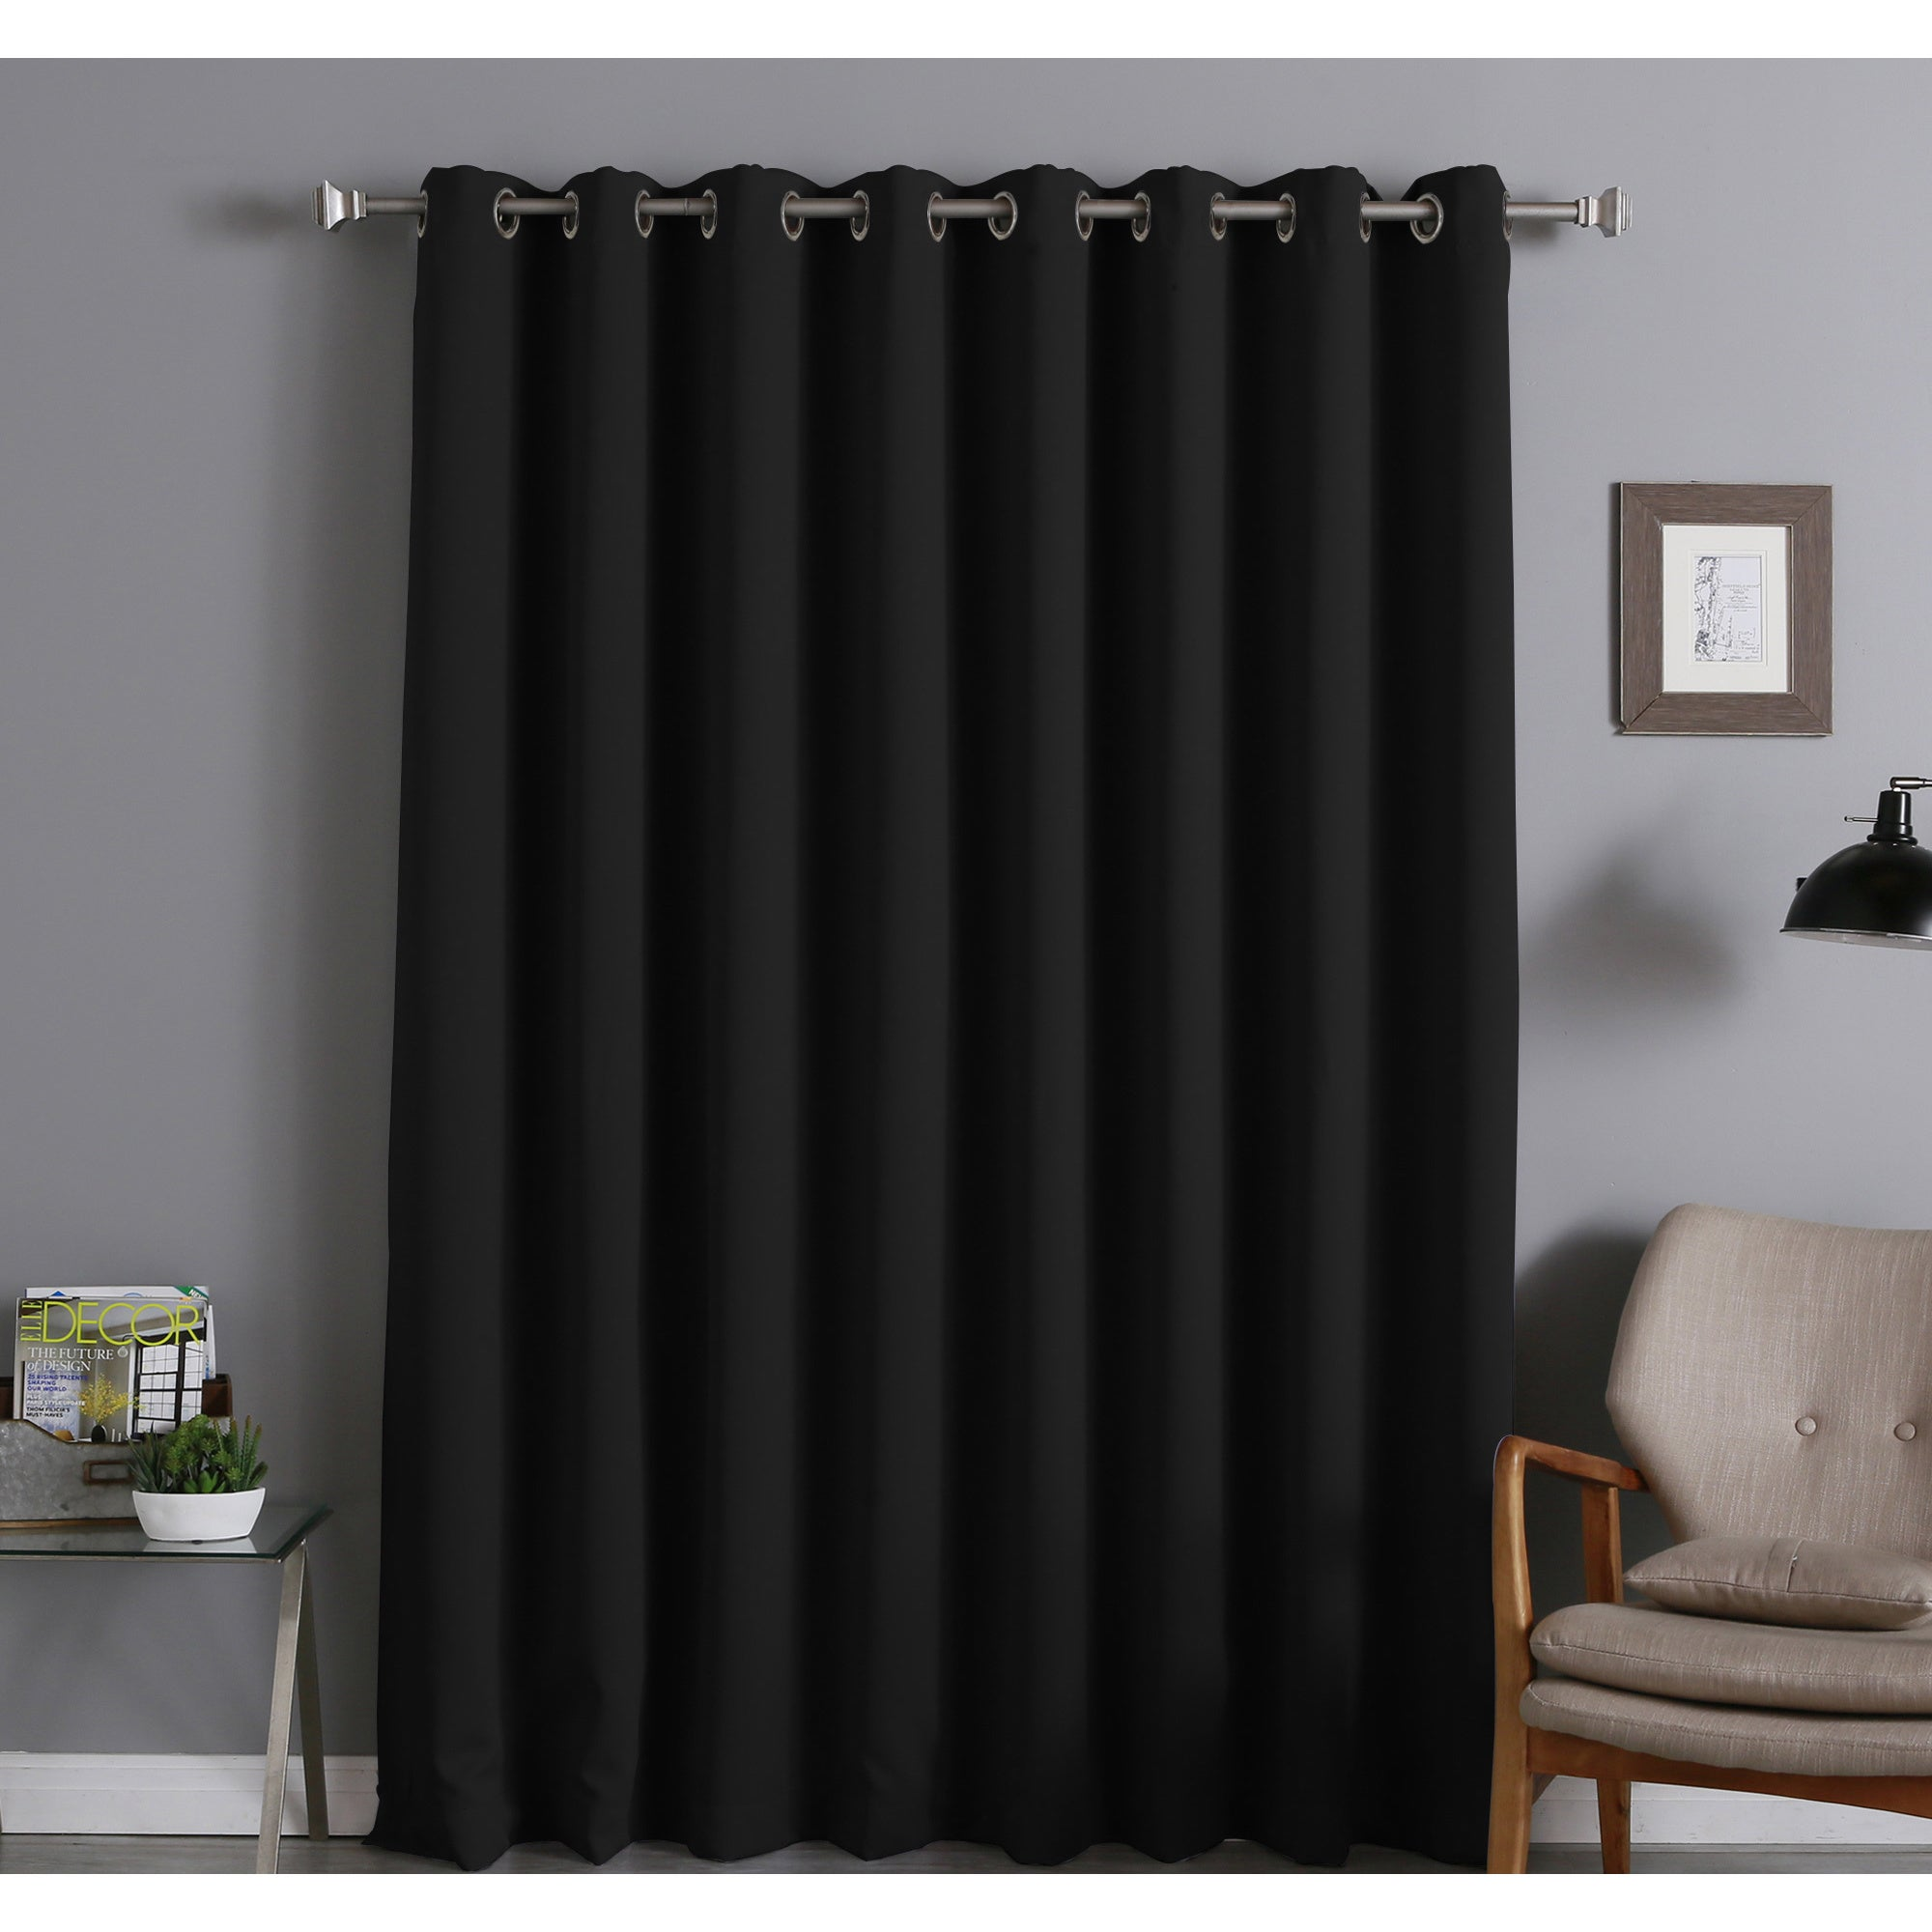 aurora home extra wide thermal insulated 96 inch blackout curtain panel 100 x ebay. Black Bedroom Furniture Sets. Home Design Ideas